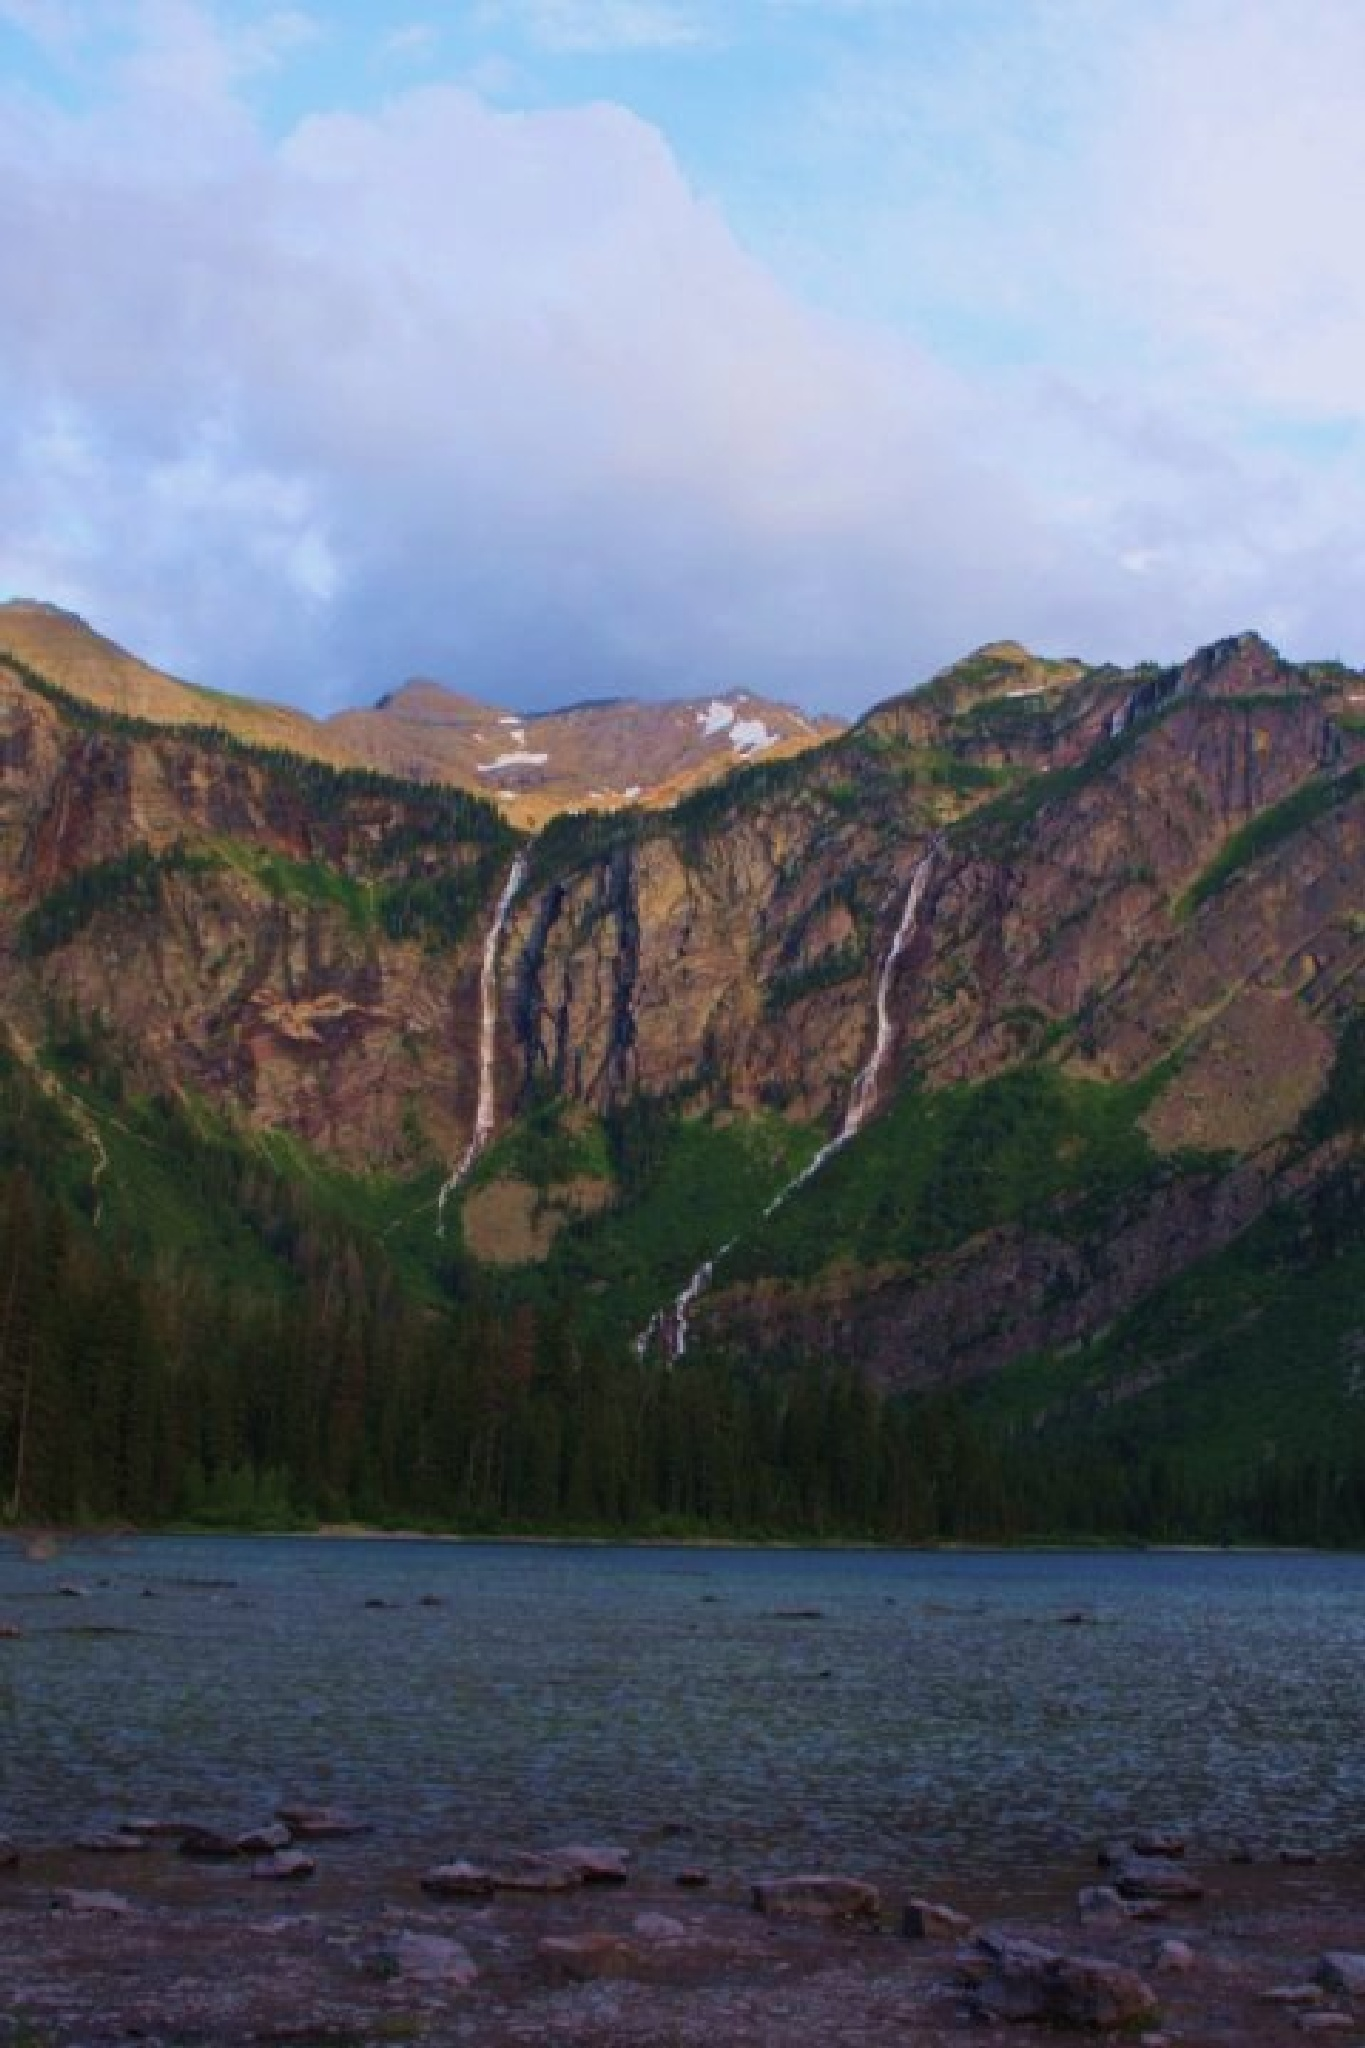 Avalanche  lake at Glacier Np by  Houston Photography Studio